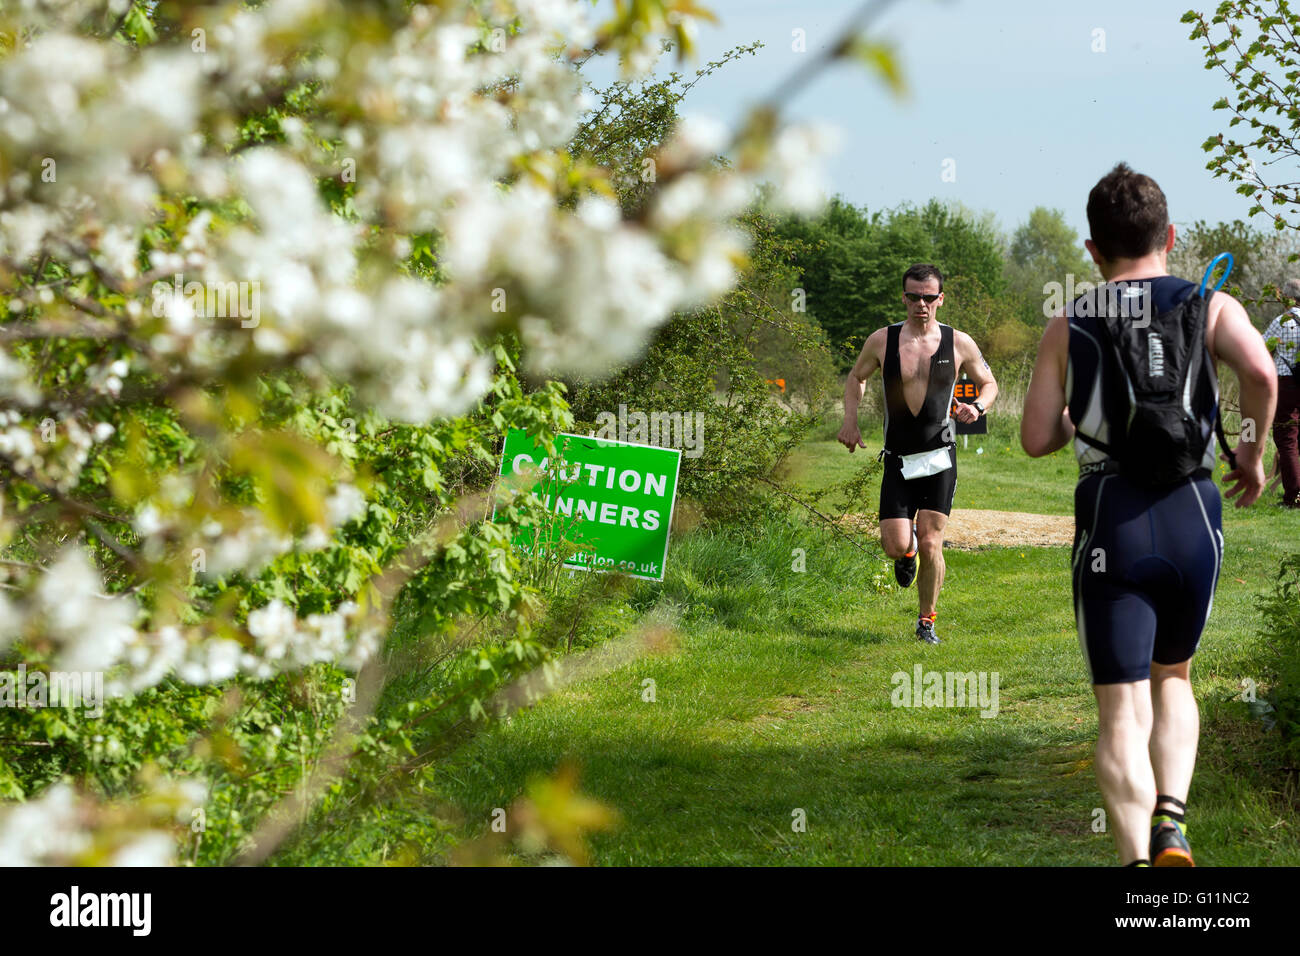 Stratford-upon-Avon, Warwickshire, UK. 8th May, 2016. Competitors pass spring blossom in the running stage of the - Stock Image